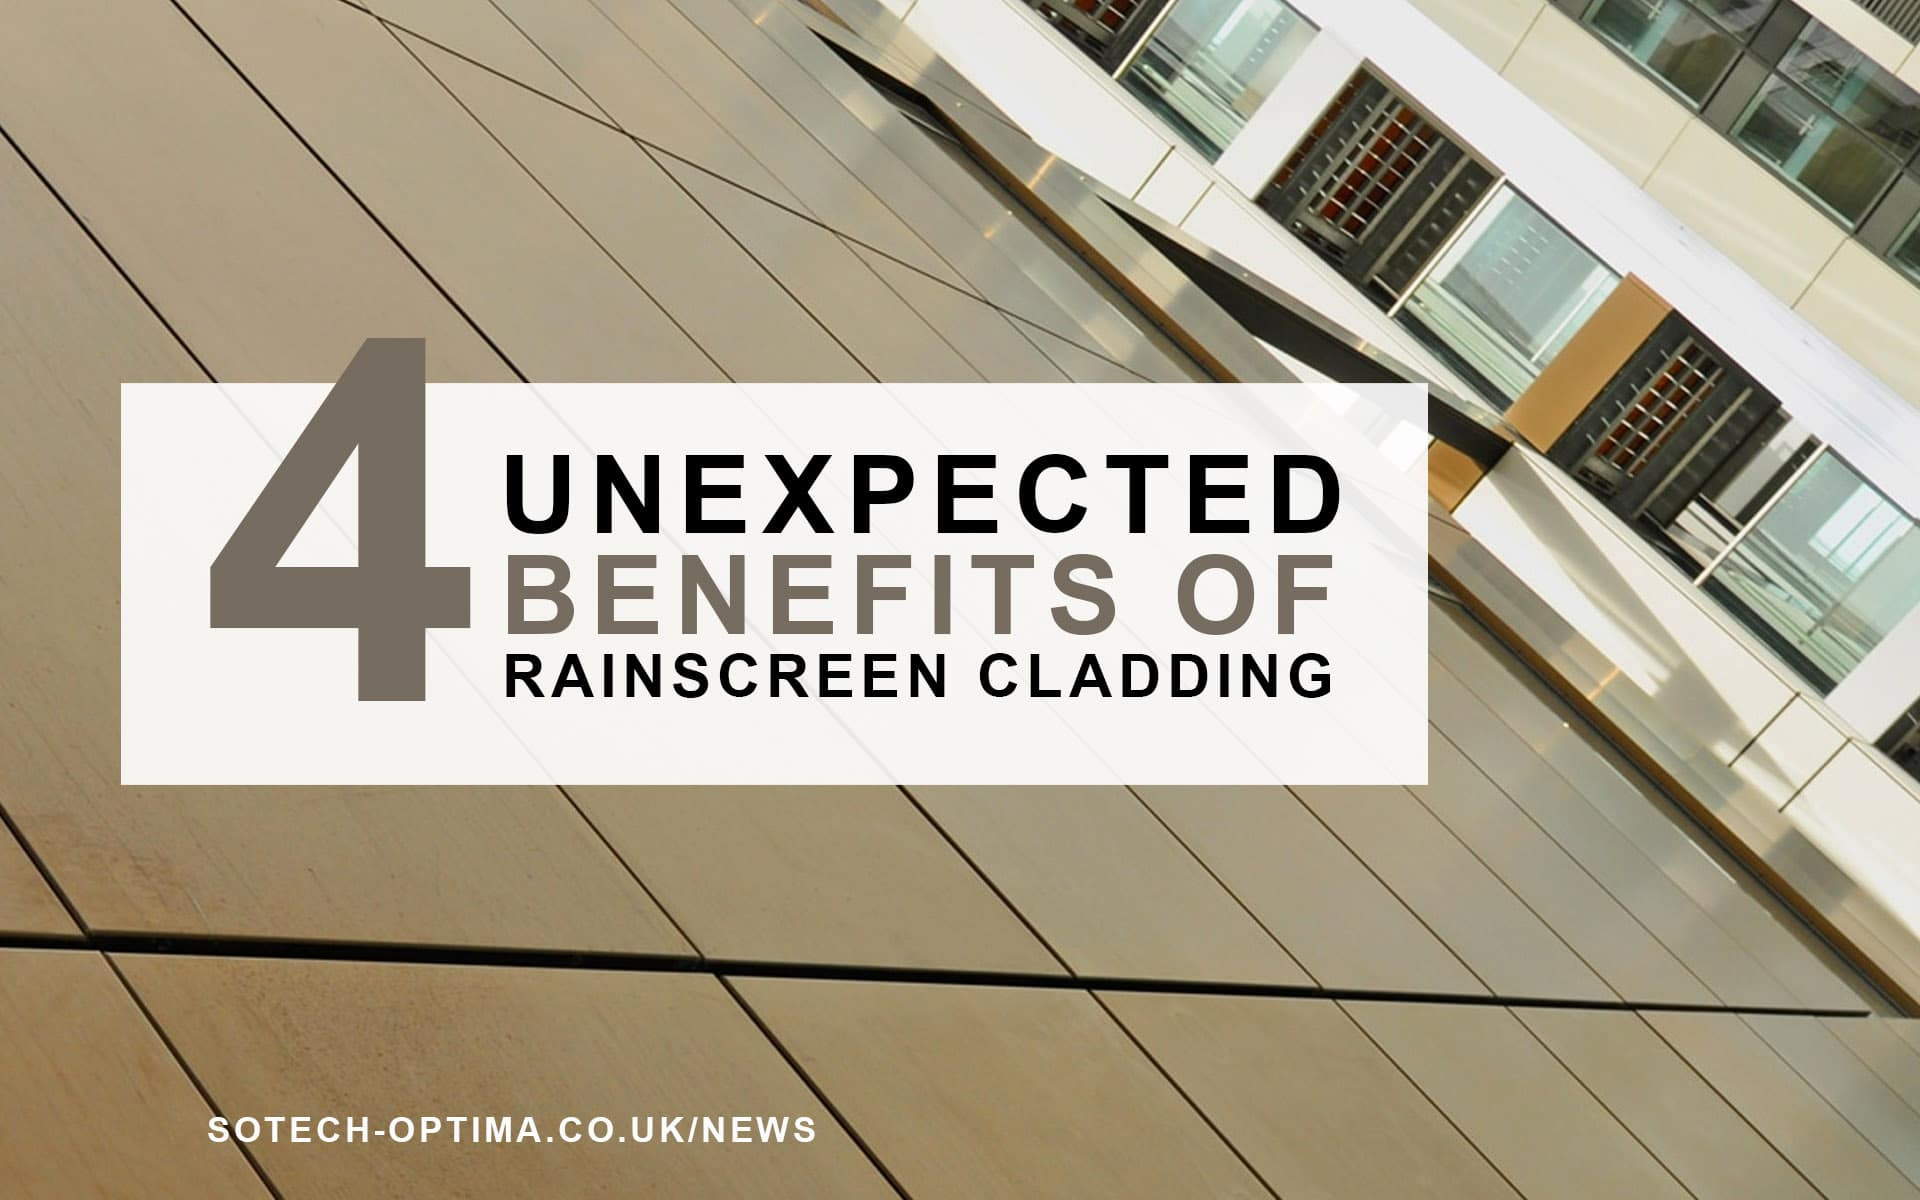 benefits of rainscreen cladding in 2018